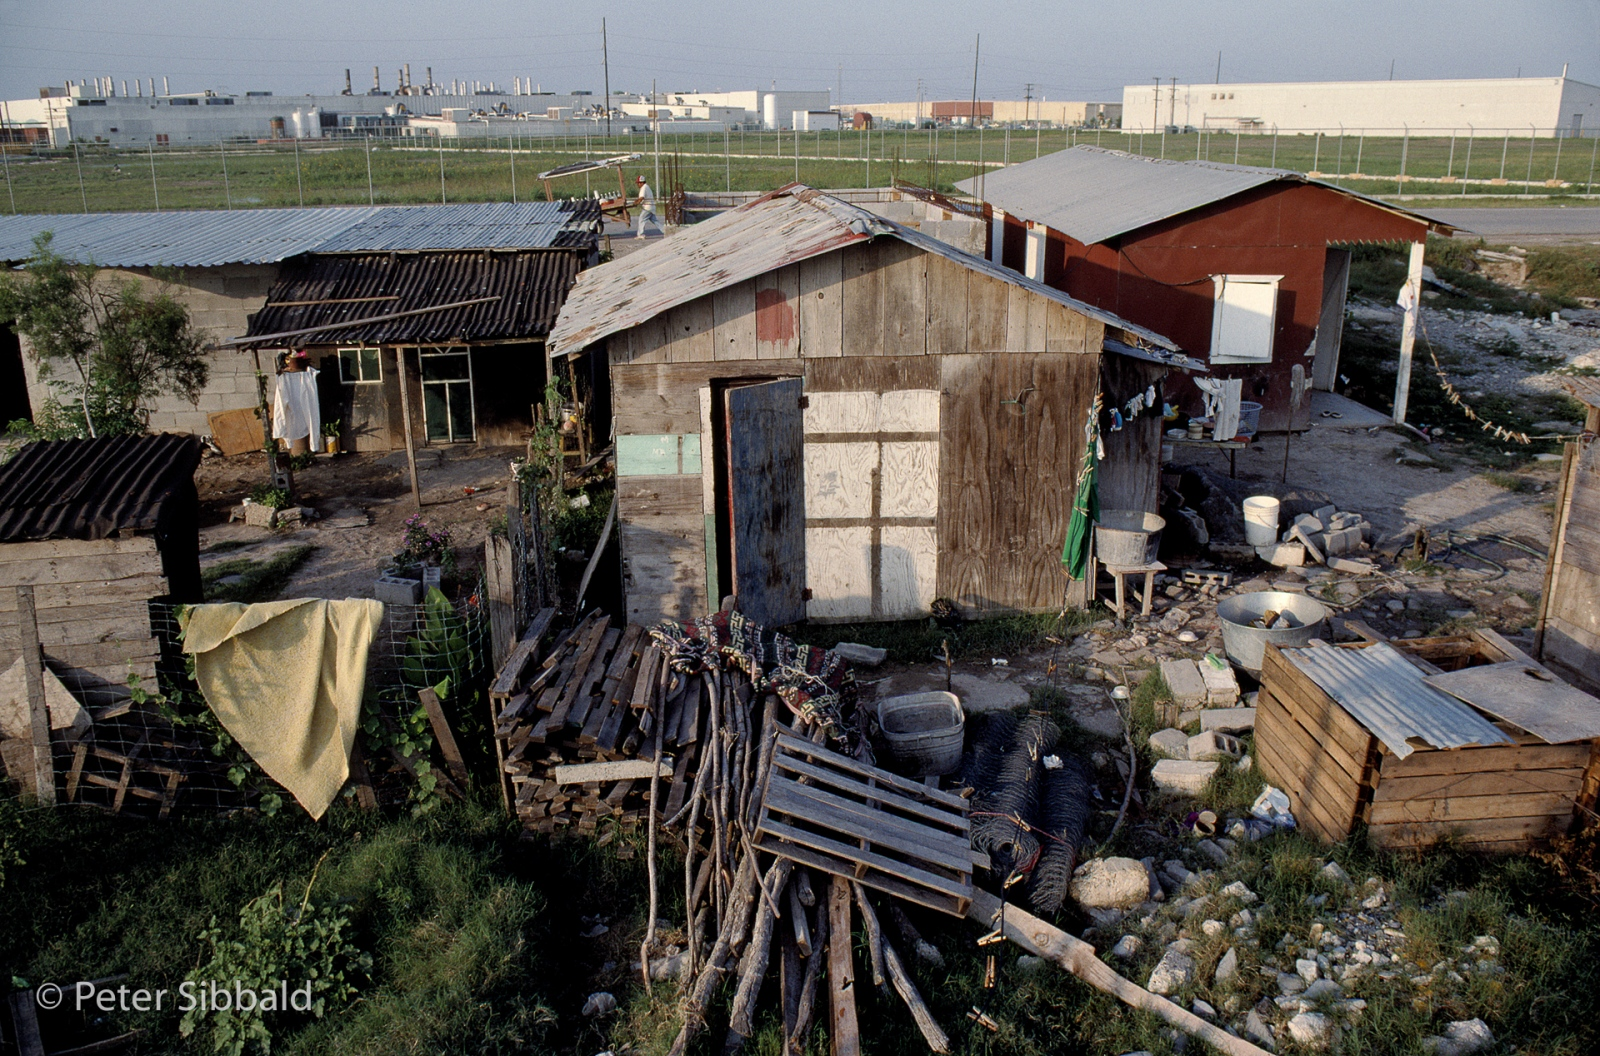 Life in the Colonia of Las Palmas: still without sewers and drainage at the time of this photograph, Las Palmas residents live in what amounts to a mosquito infested swamp. Many raise pigs which run loose and forage from amongst the community's waste. © Peter Sibbald, 1993